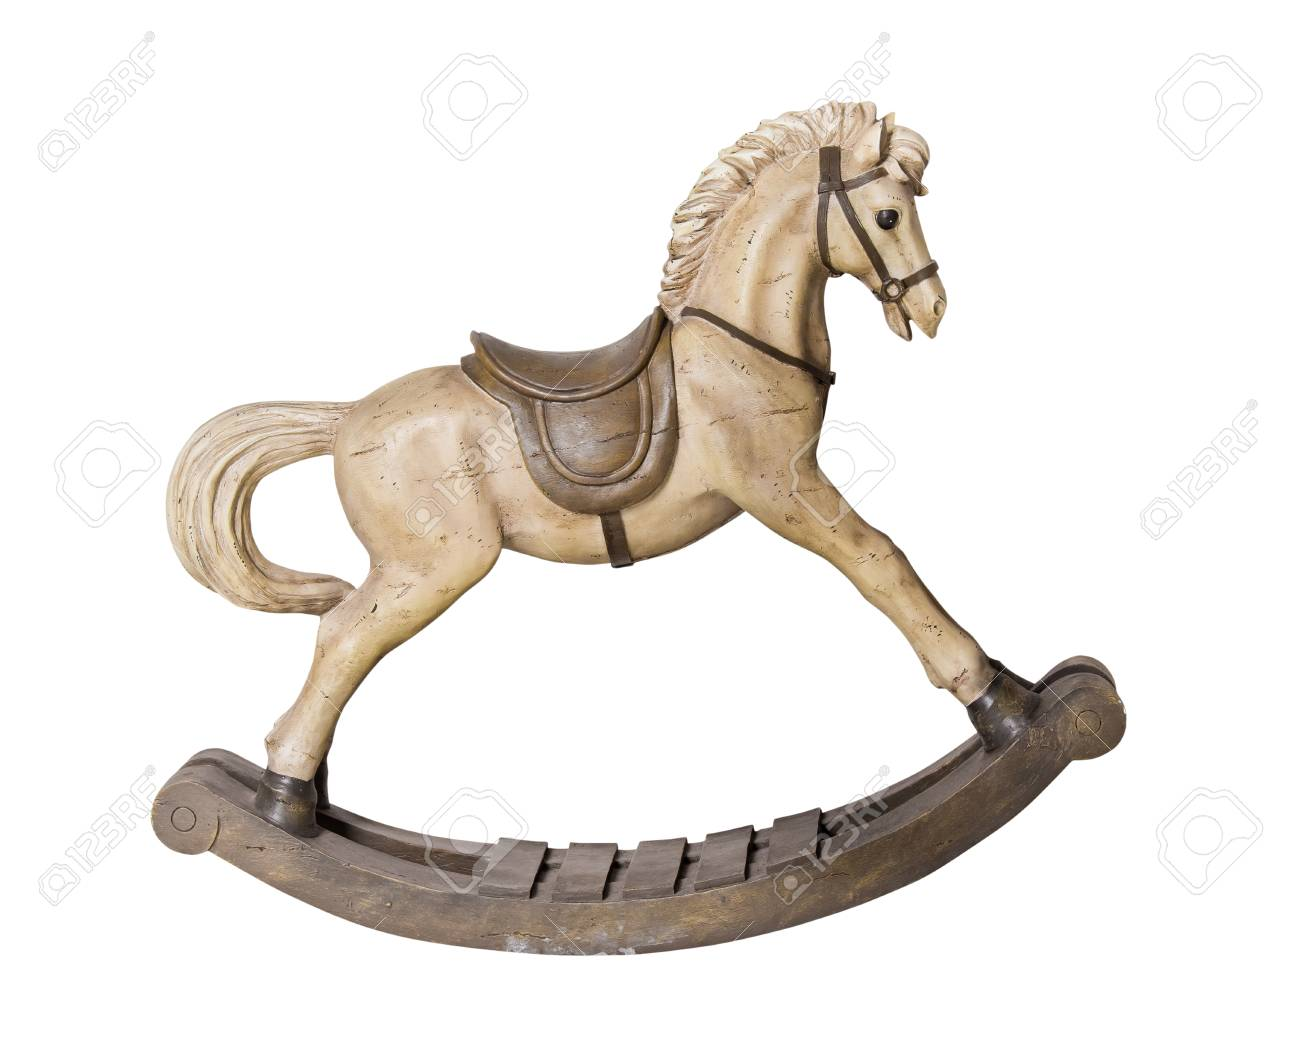 Vintage Wooden Rocking Horse Toy Isolated On White Background Stock Photo Picture And Royalty Free Image Image 112661925